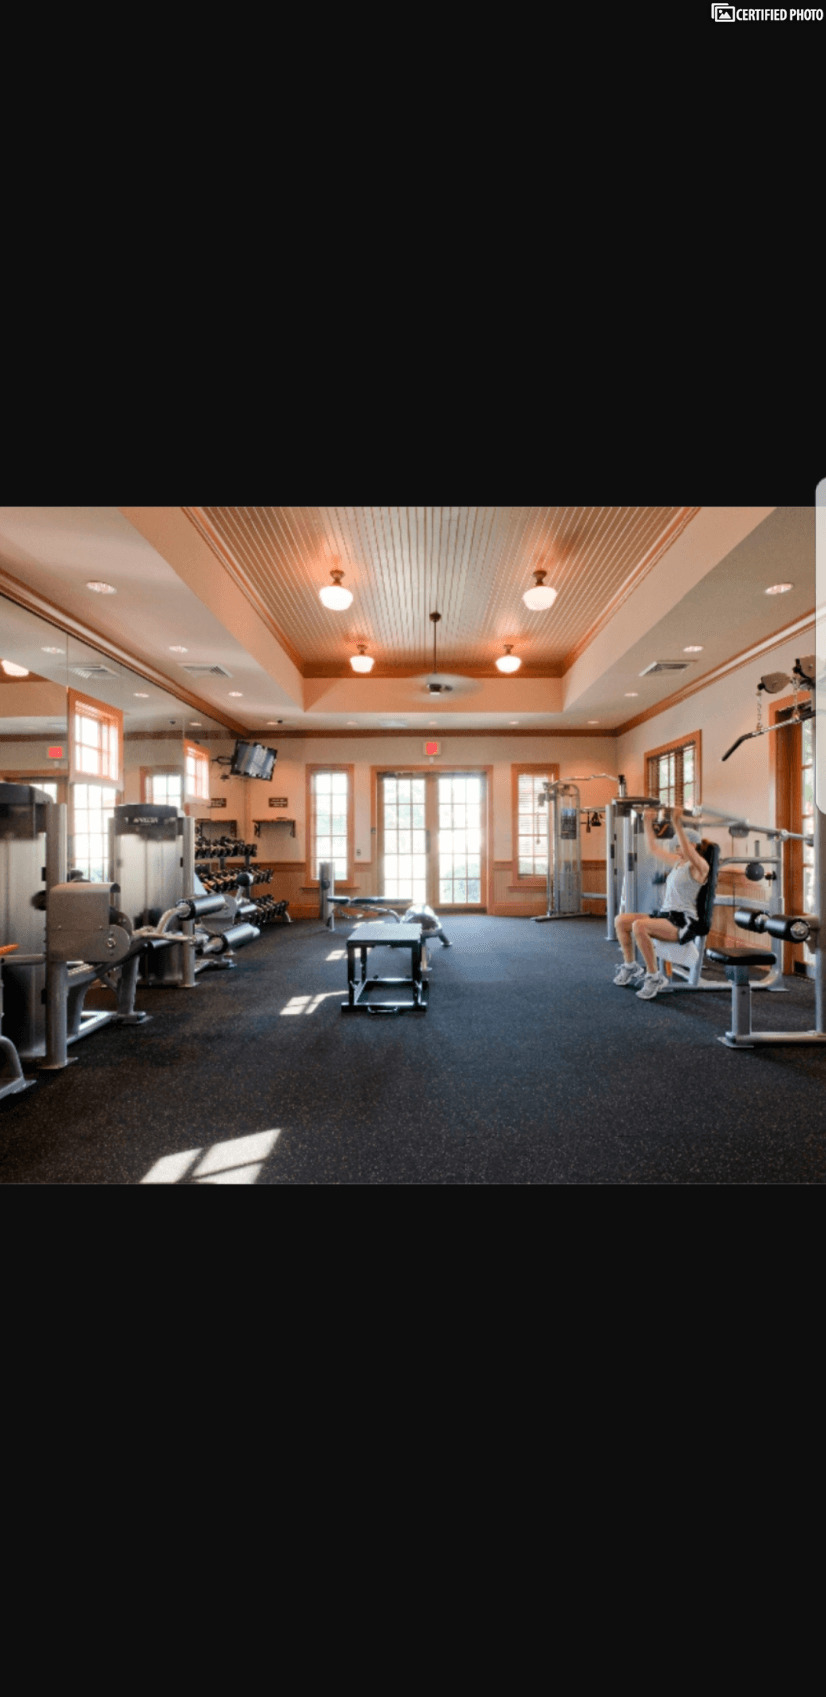 Partial picture of 1 of 2 Fitness Centers